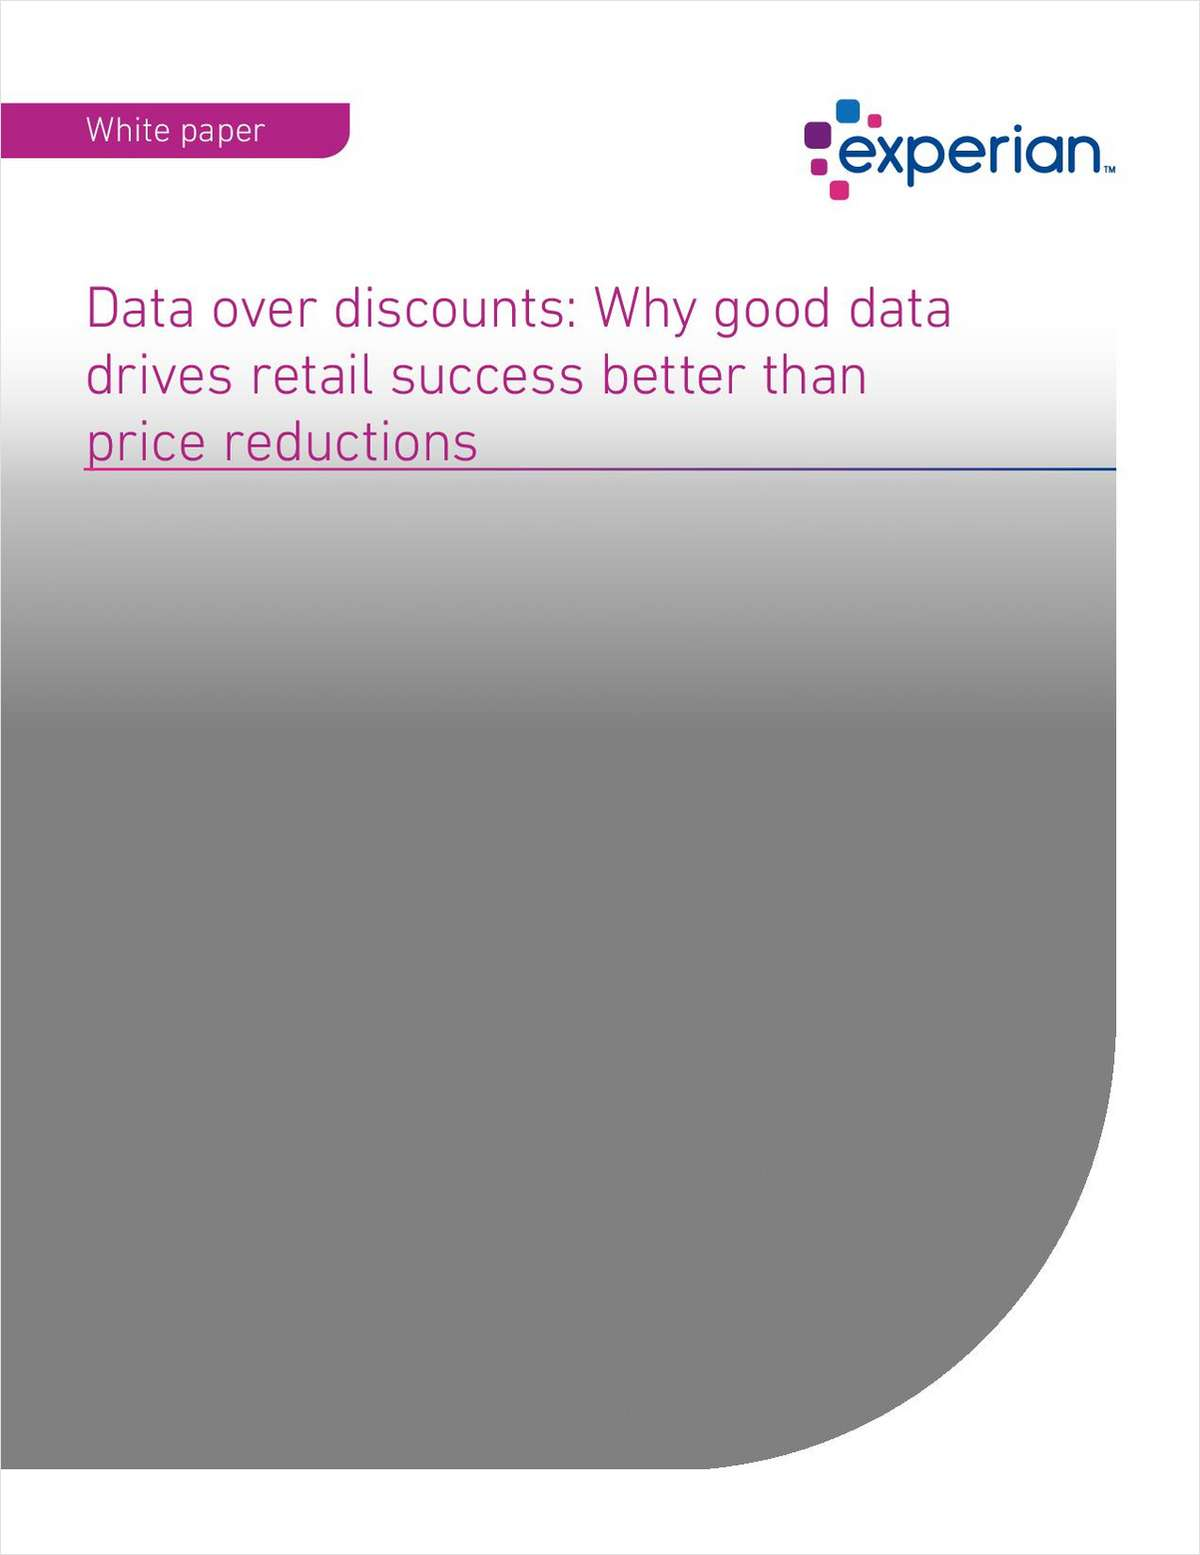 Data over discounts: Why good data drives retail success better than price reductions